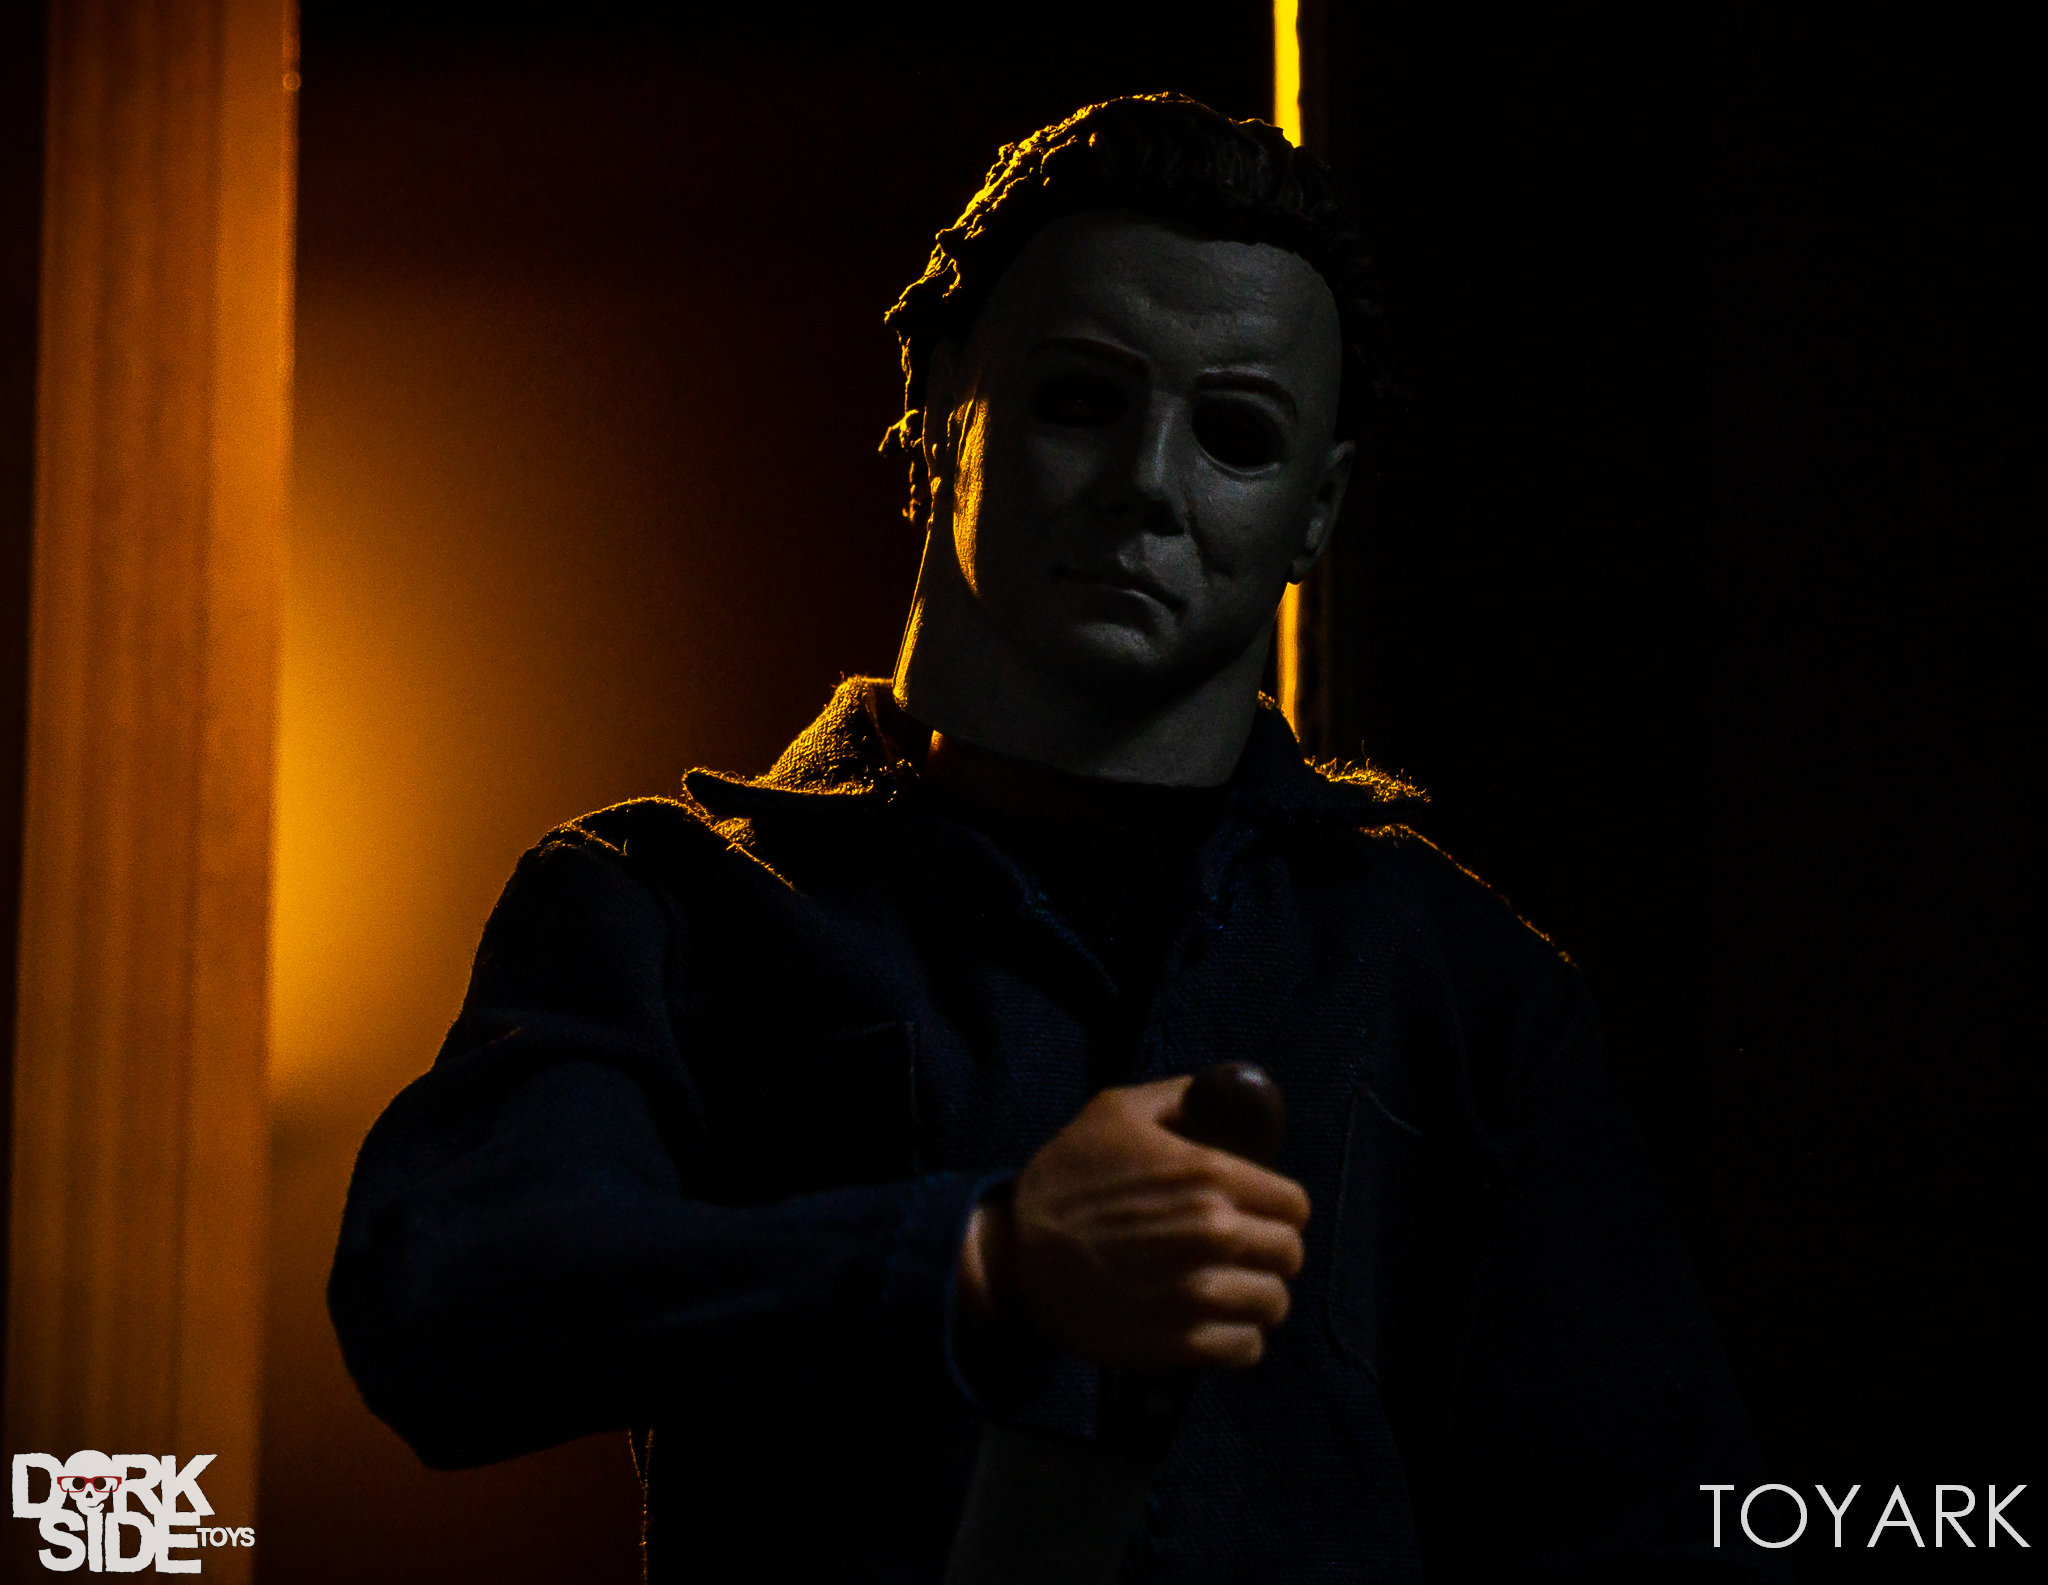 https://news.toyark.com/wp-content/uploads/sites/4/2018/10/Mezco-One12-Michael-Myers-012.jpg